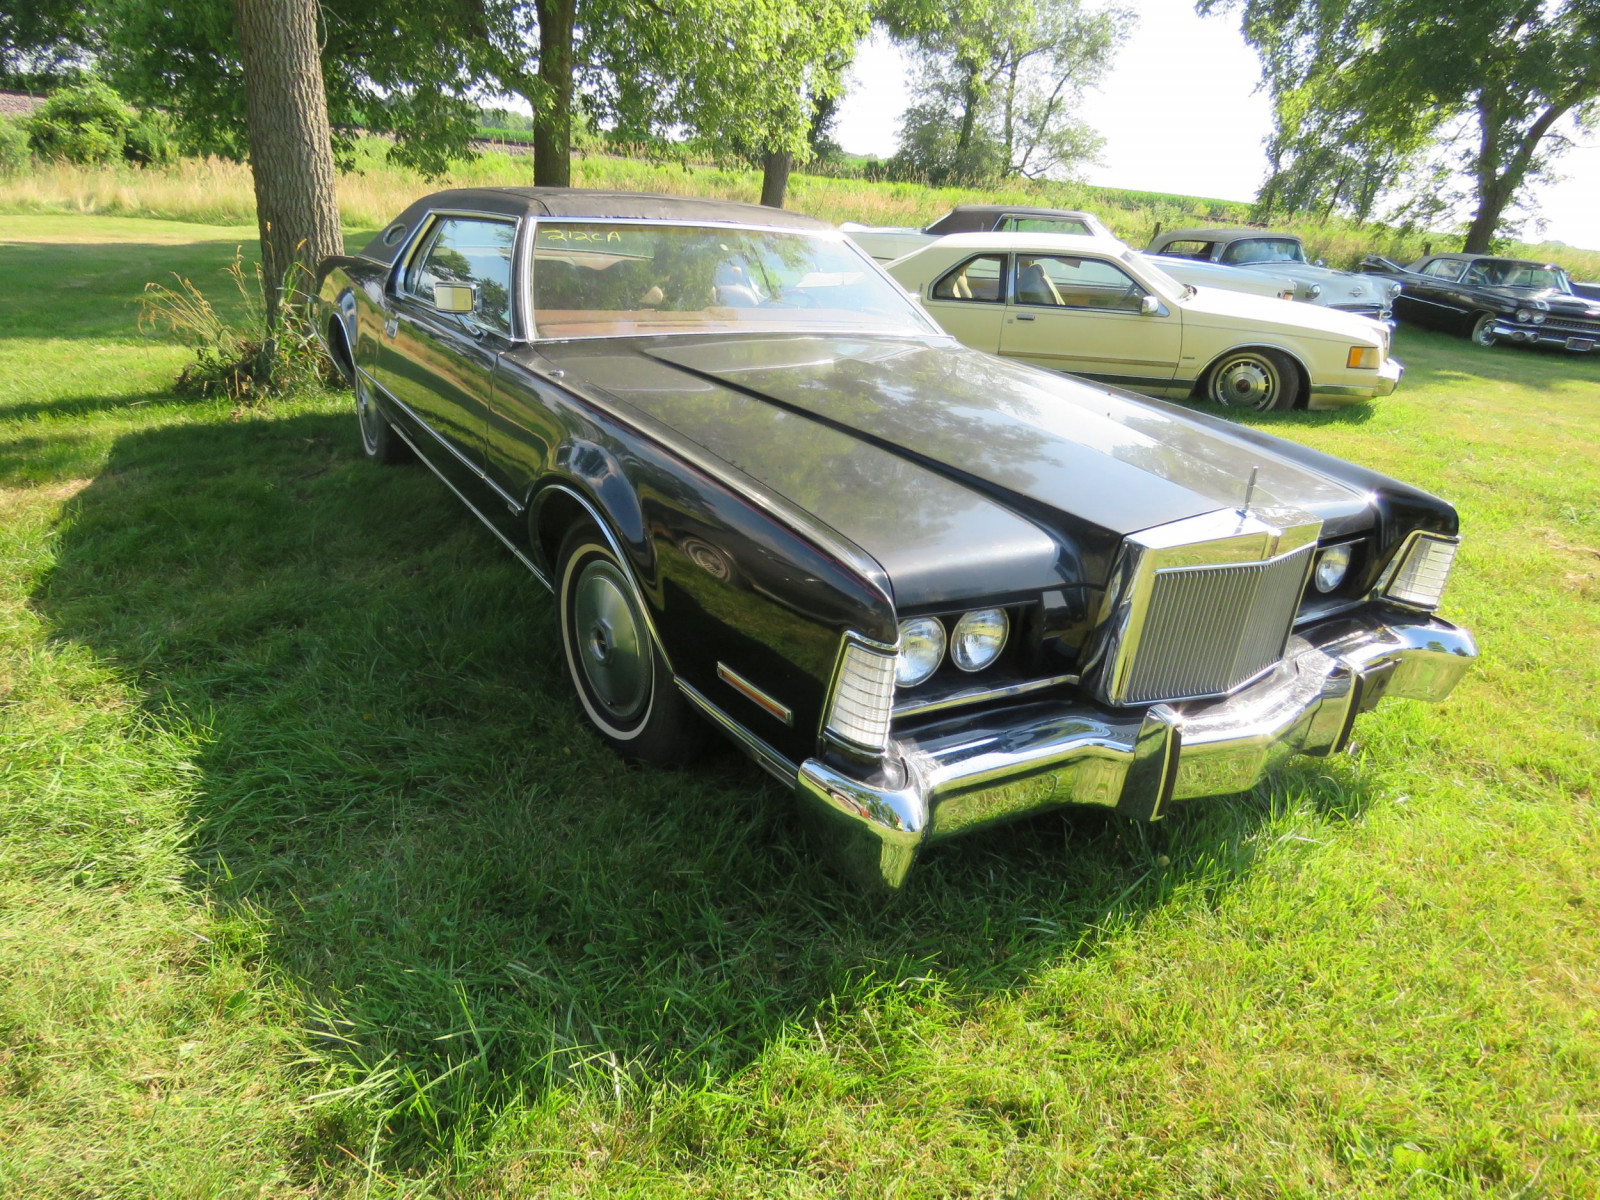 1973 Lincoln Continental Cartier Coupe - Image 1